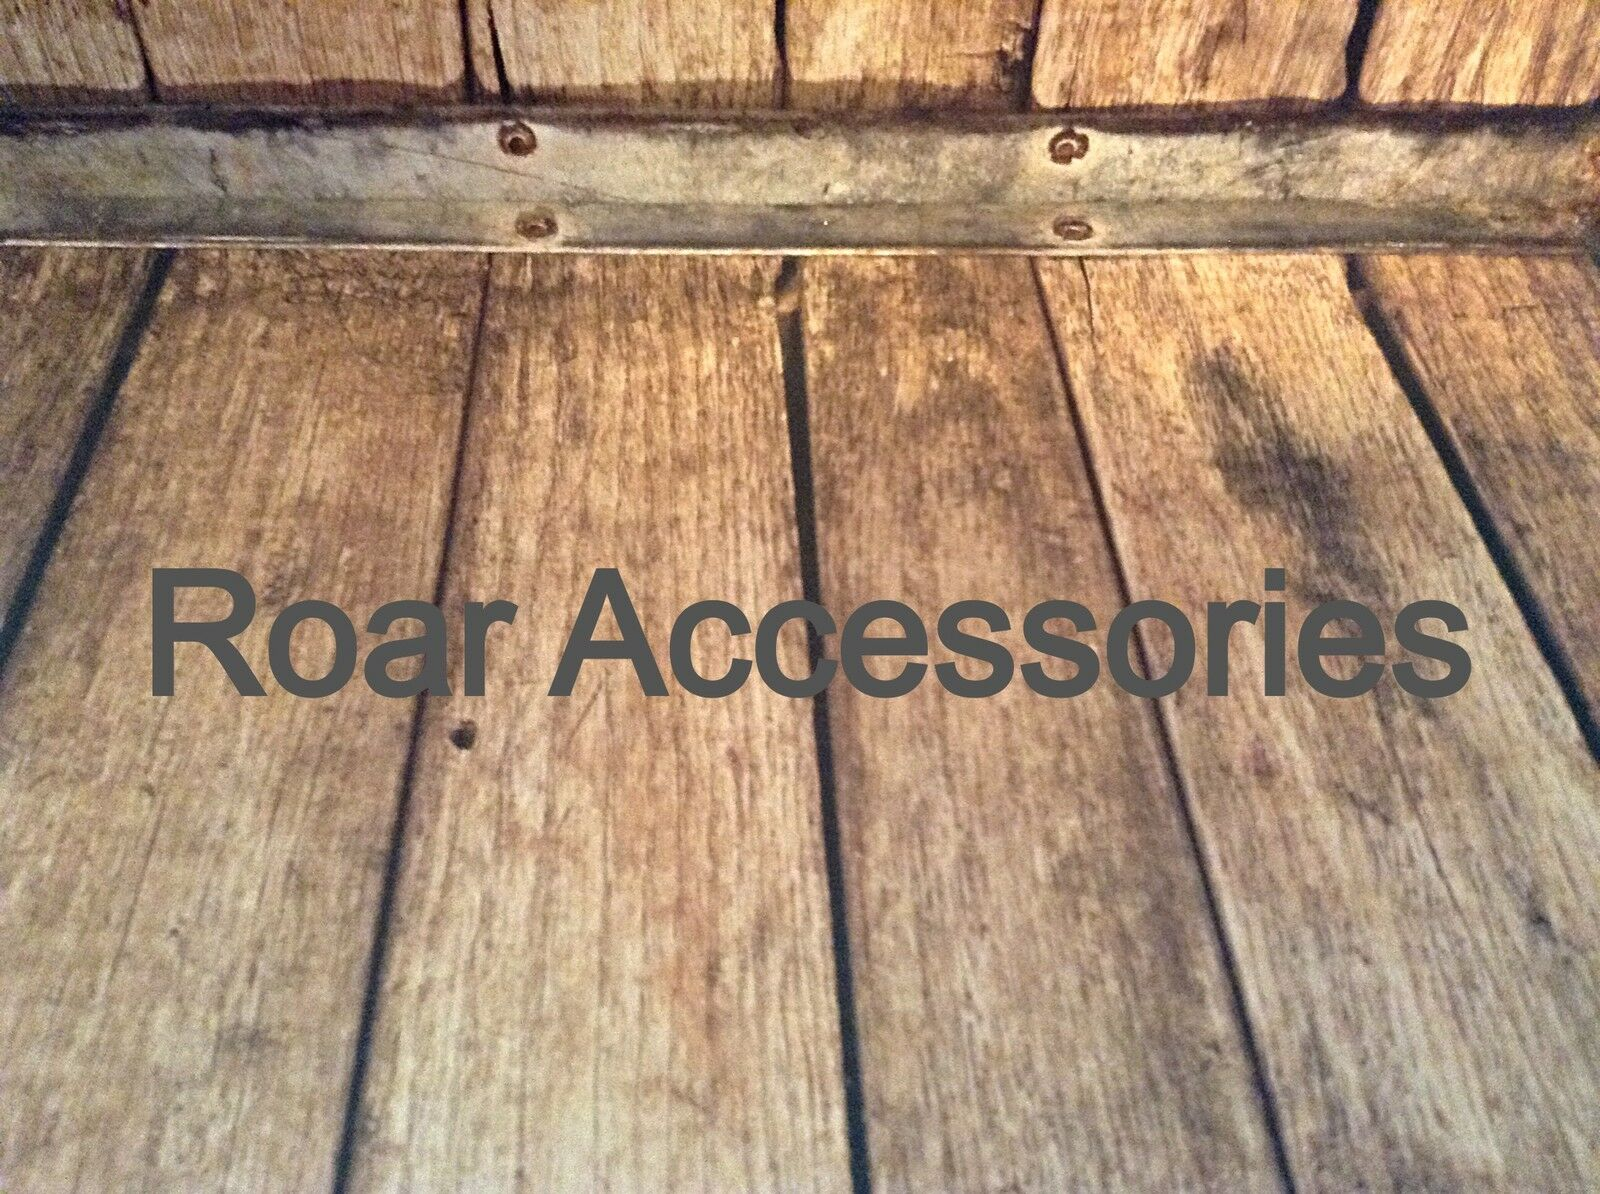 RoarAccessories